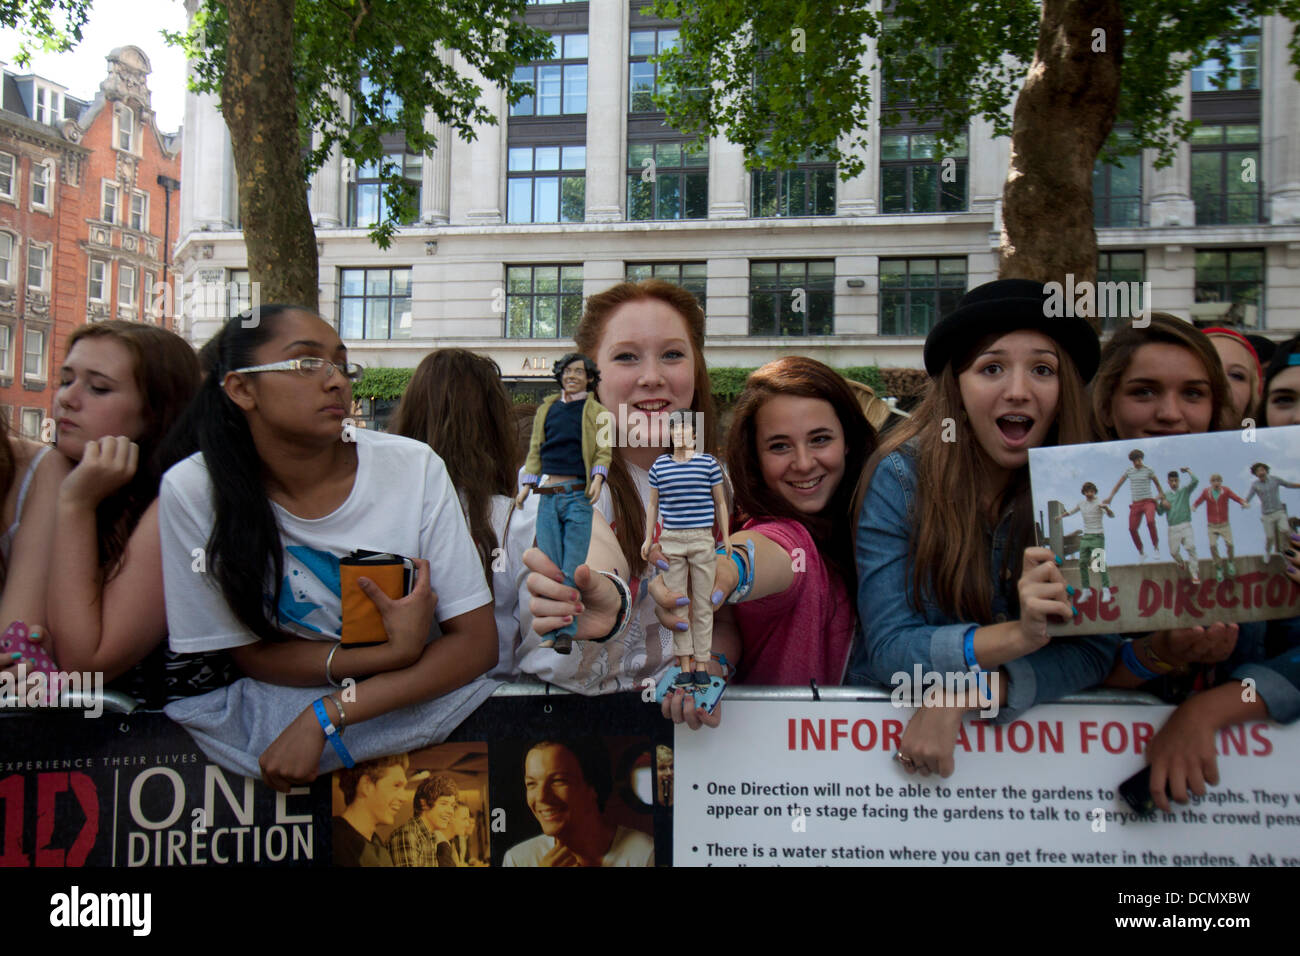 Leicester Square, London, UK. 20th August 2013.  Fans hold dolls of their favorite band members as thousands of - Stock Image